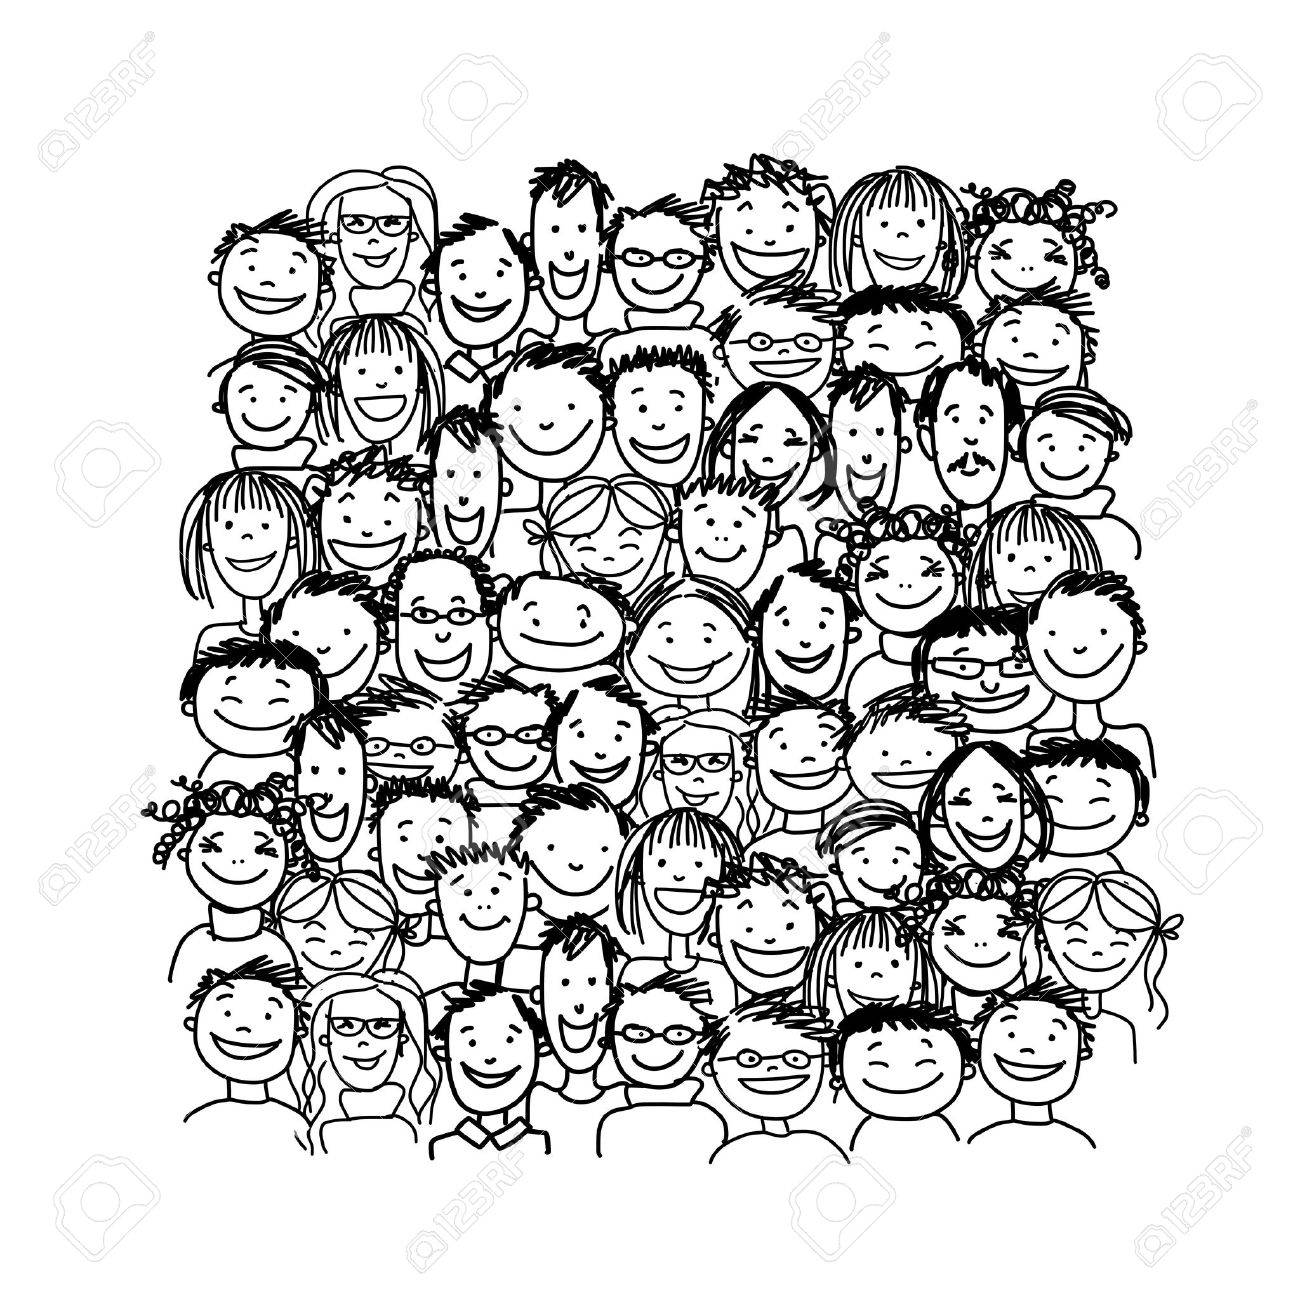 Group of people, sketch for your design Stock Vector - 37038363